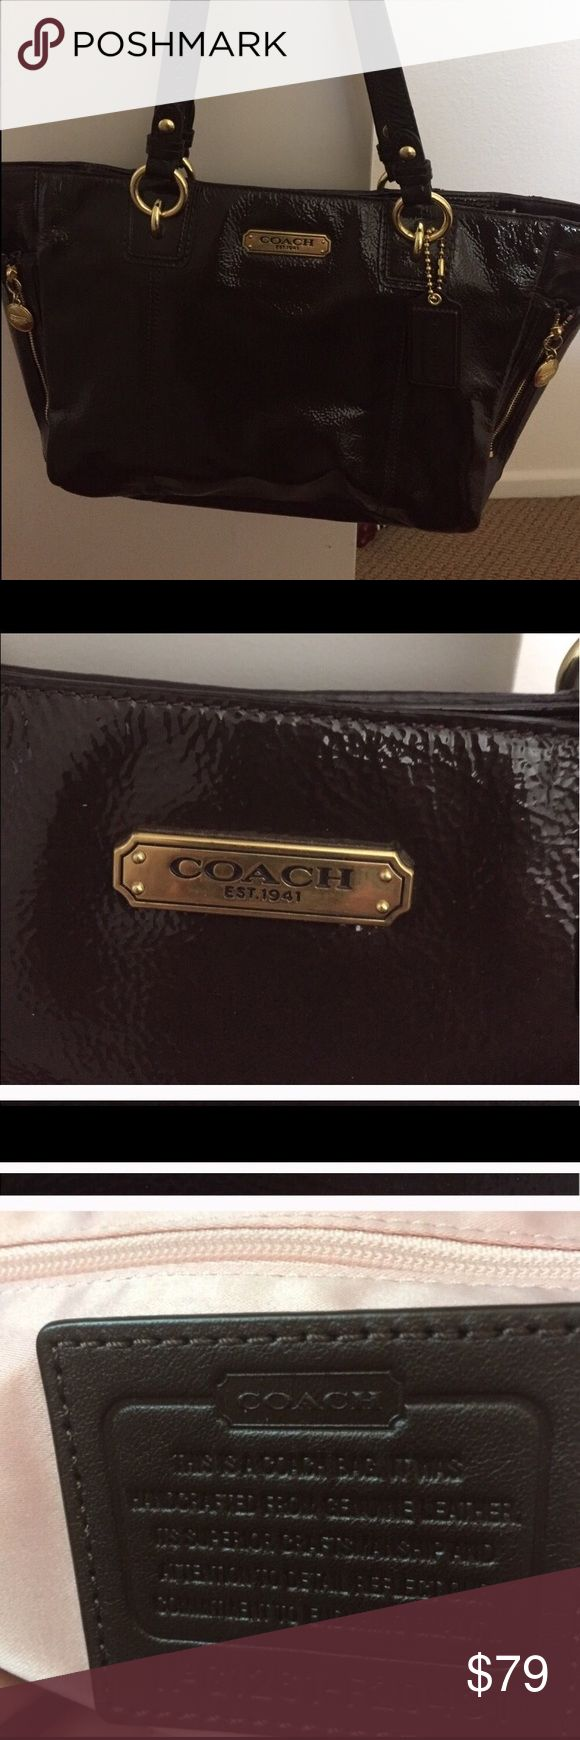 Like NEW * Satchel by Coach, PERFECT ~ Cute!! Like NEW * Satchel by Coach, PERFECT ~ Cute!! Color: Brown. Patent leather. Authentic. Bought at Cabazon Coach Factory Outlet. Used about two hours ~ then stored in closet for last year ~ reducing personal collection ~ absolutely PERFECT! Coach Bags Satchels